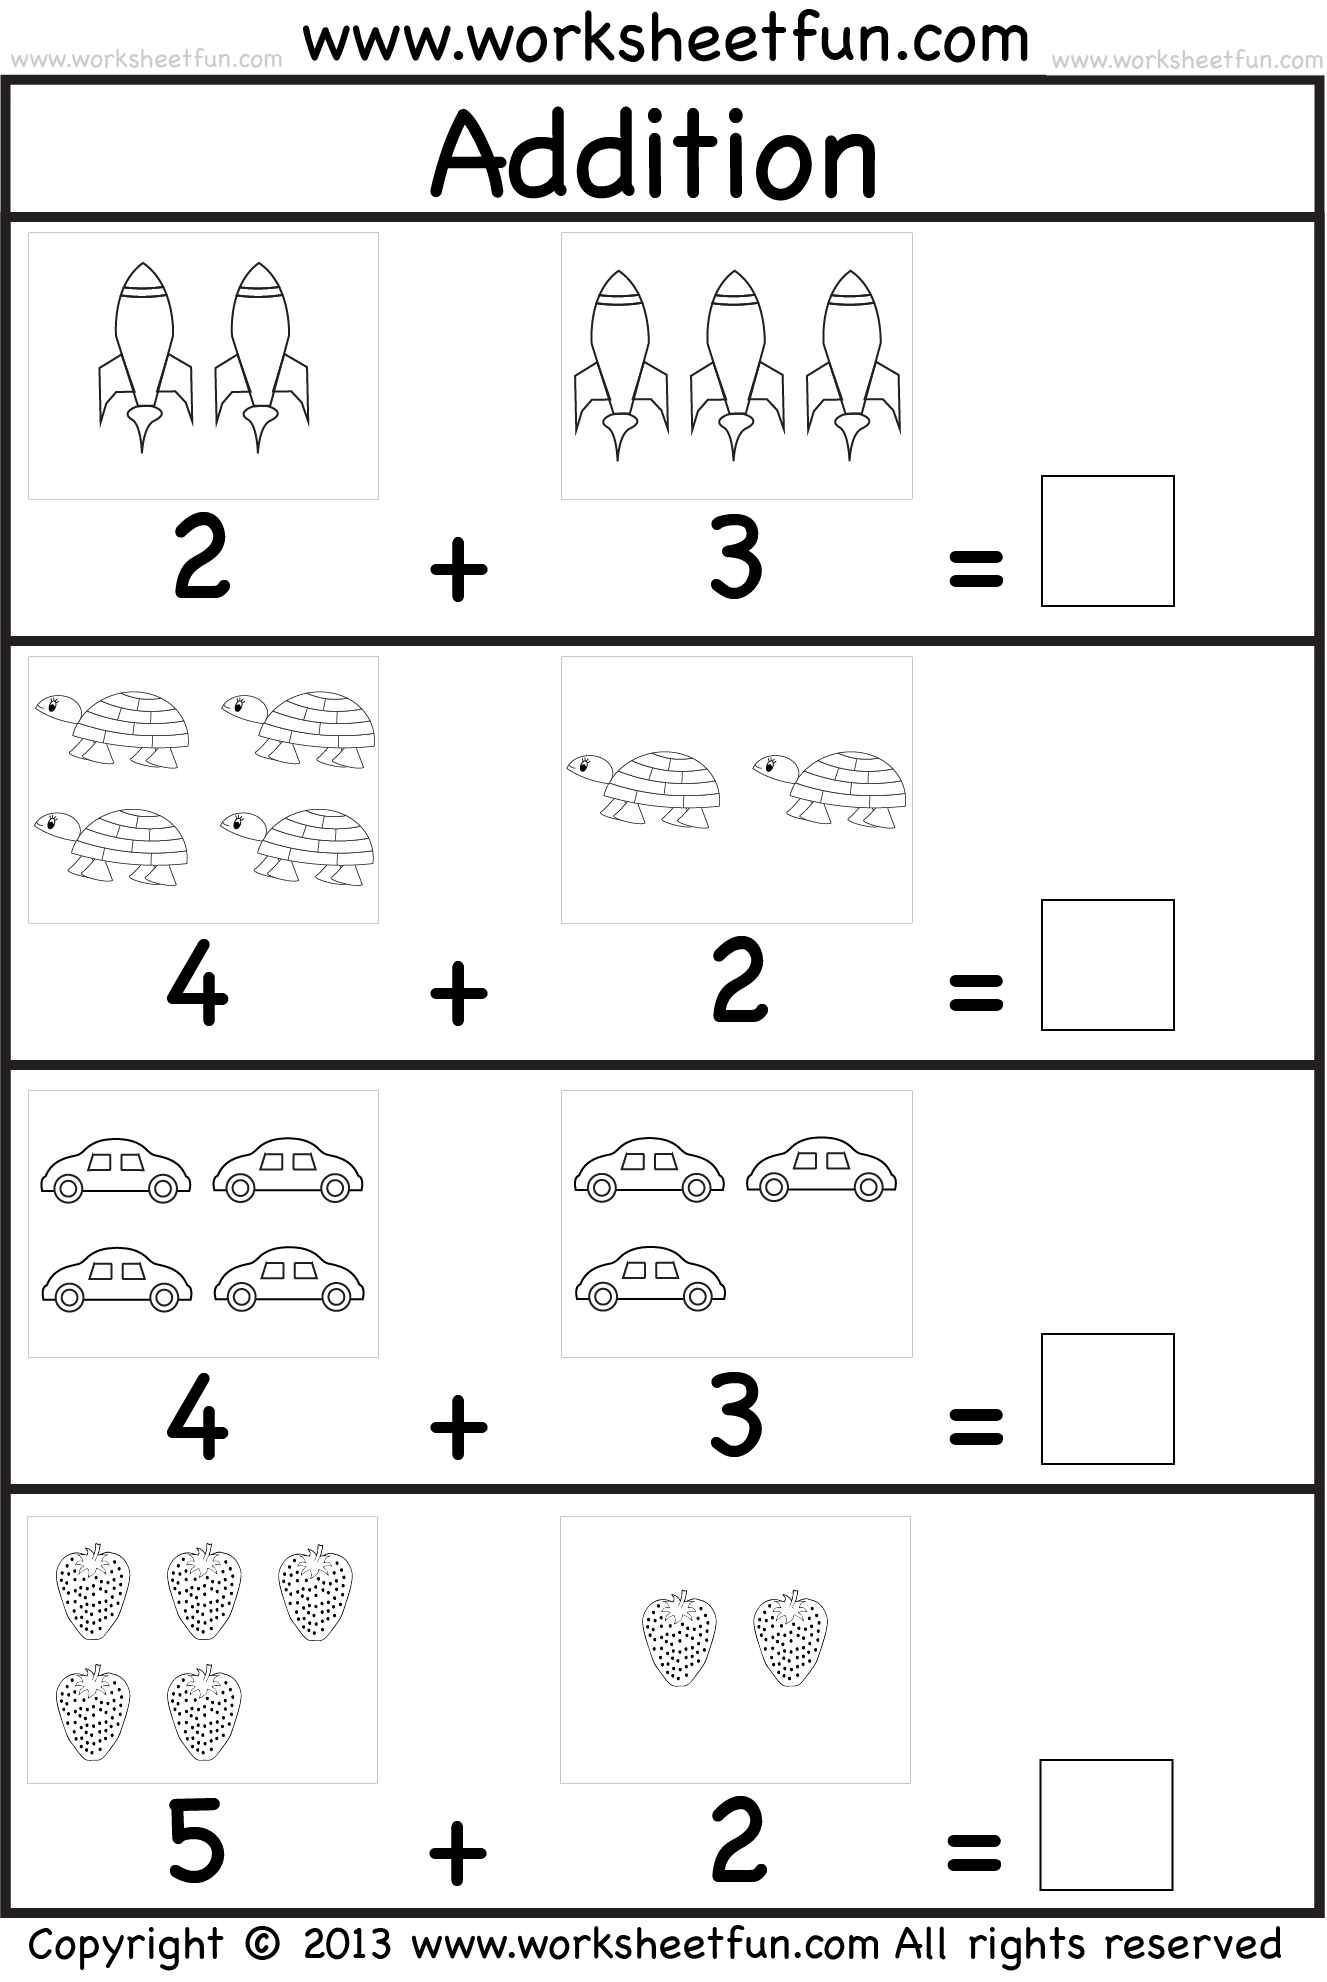 Printable coloring pages with math problems - This Site Has Great Free Worksheets For Everything From Abc S To Math